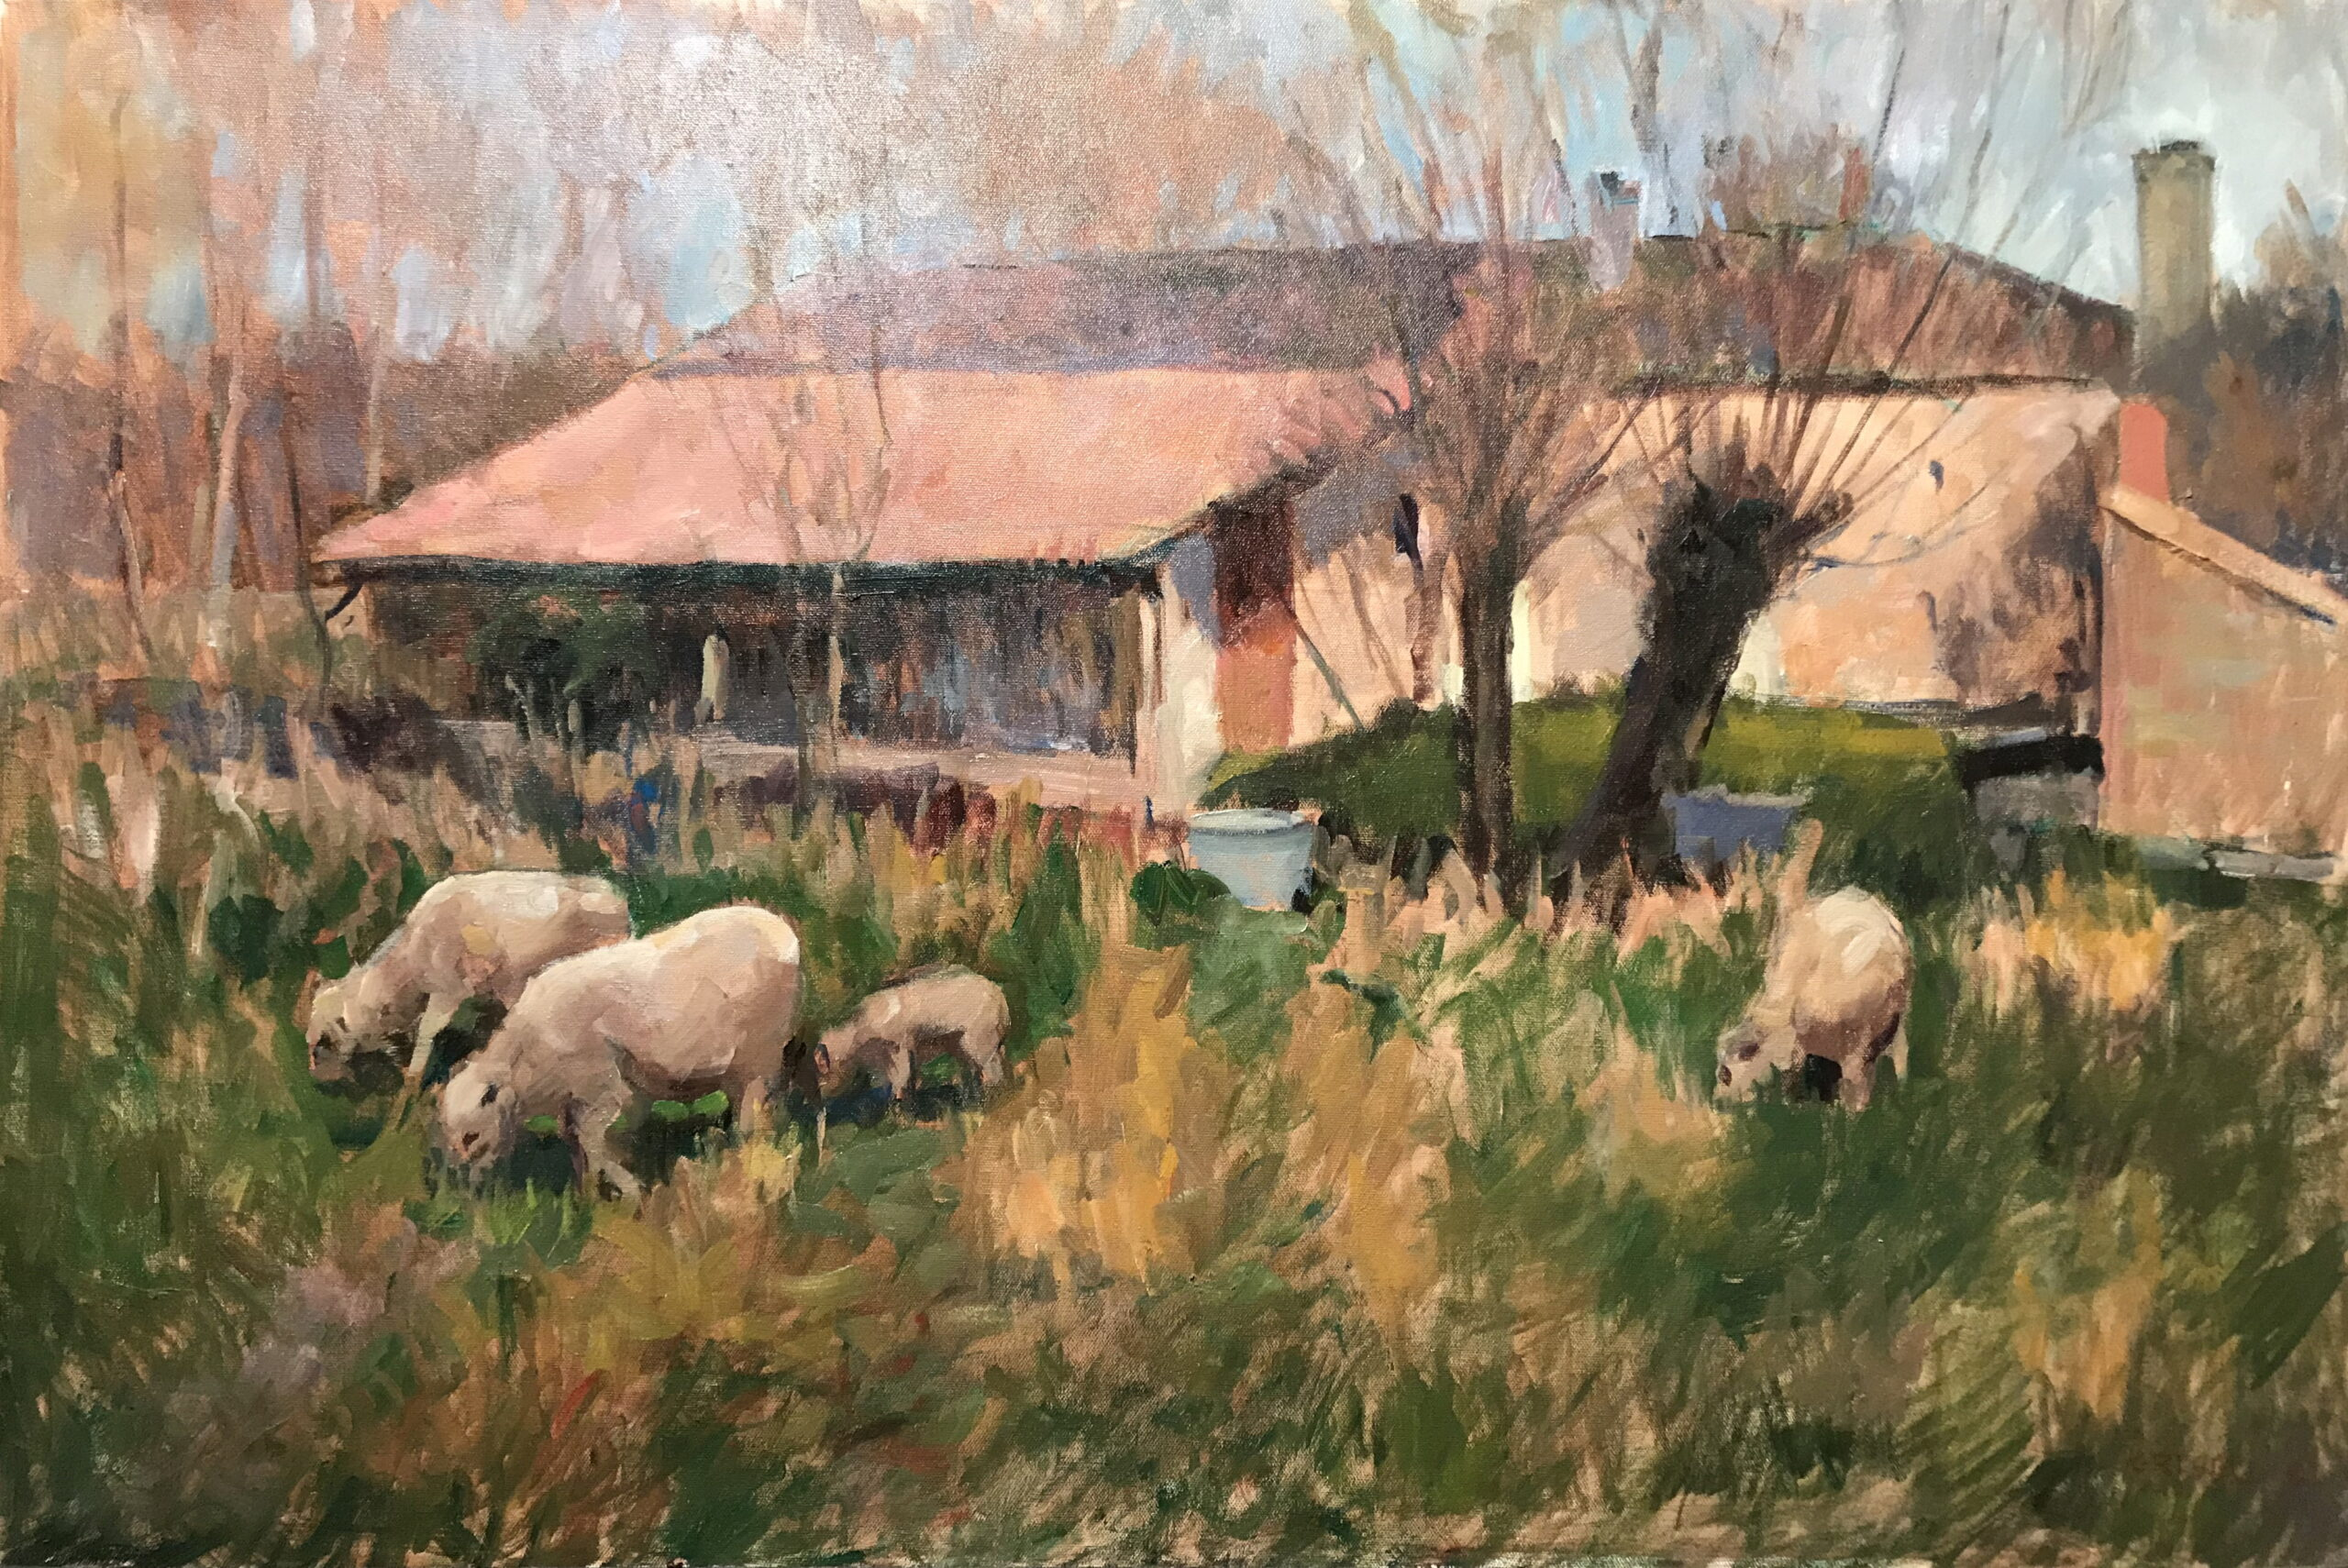 French Farmyard, Oil on Canvas, 24 x 36 Inches, by Susan Grisell, $1500